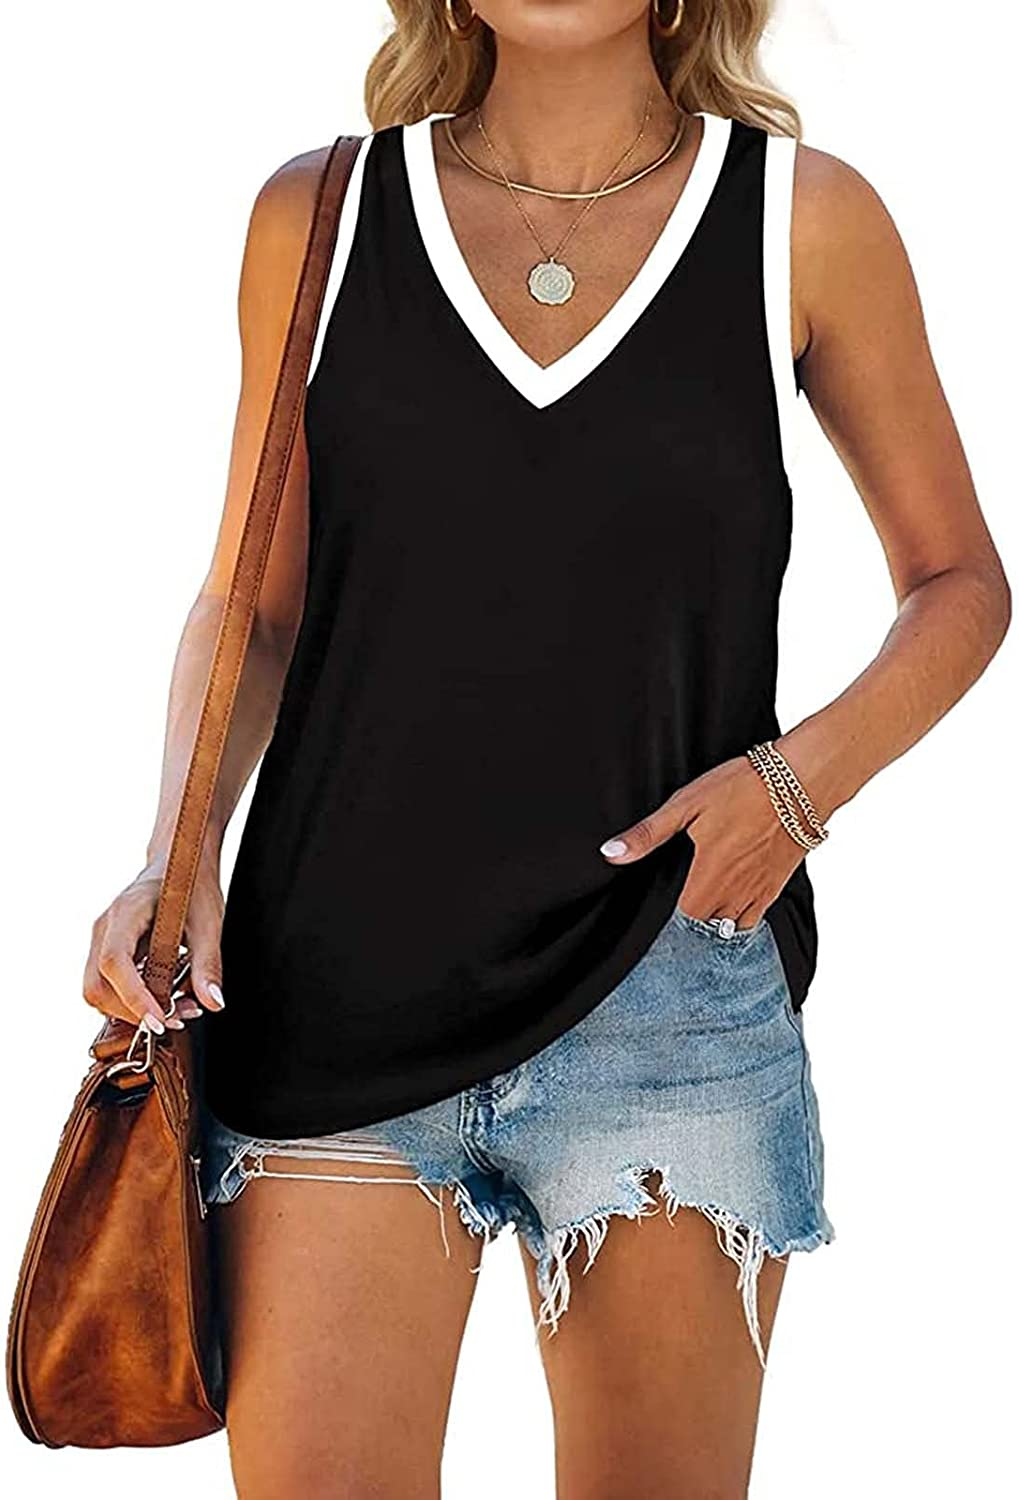 ORT Women's Tank Tops, Womens V Neck Tank Tops Sleeveless Shirts Loose Fit Vest Casual Summer Wrap Spaghetti Strap Tank Top